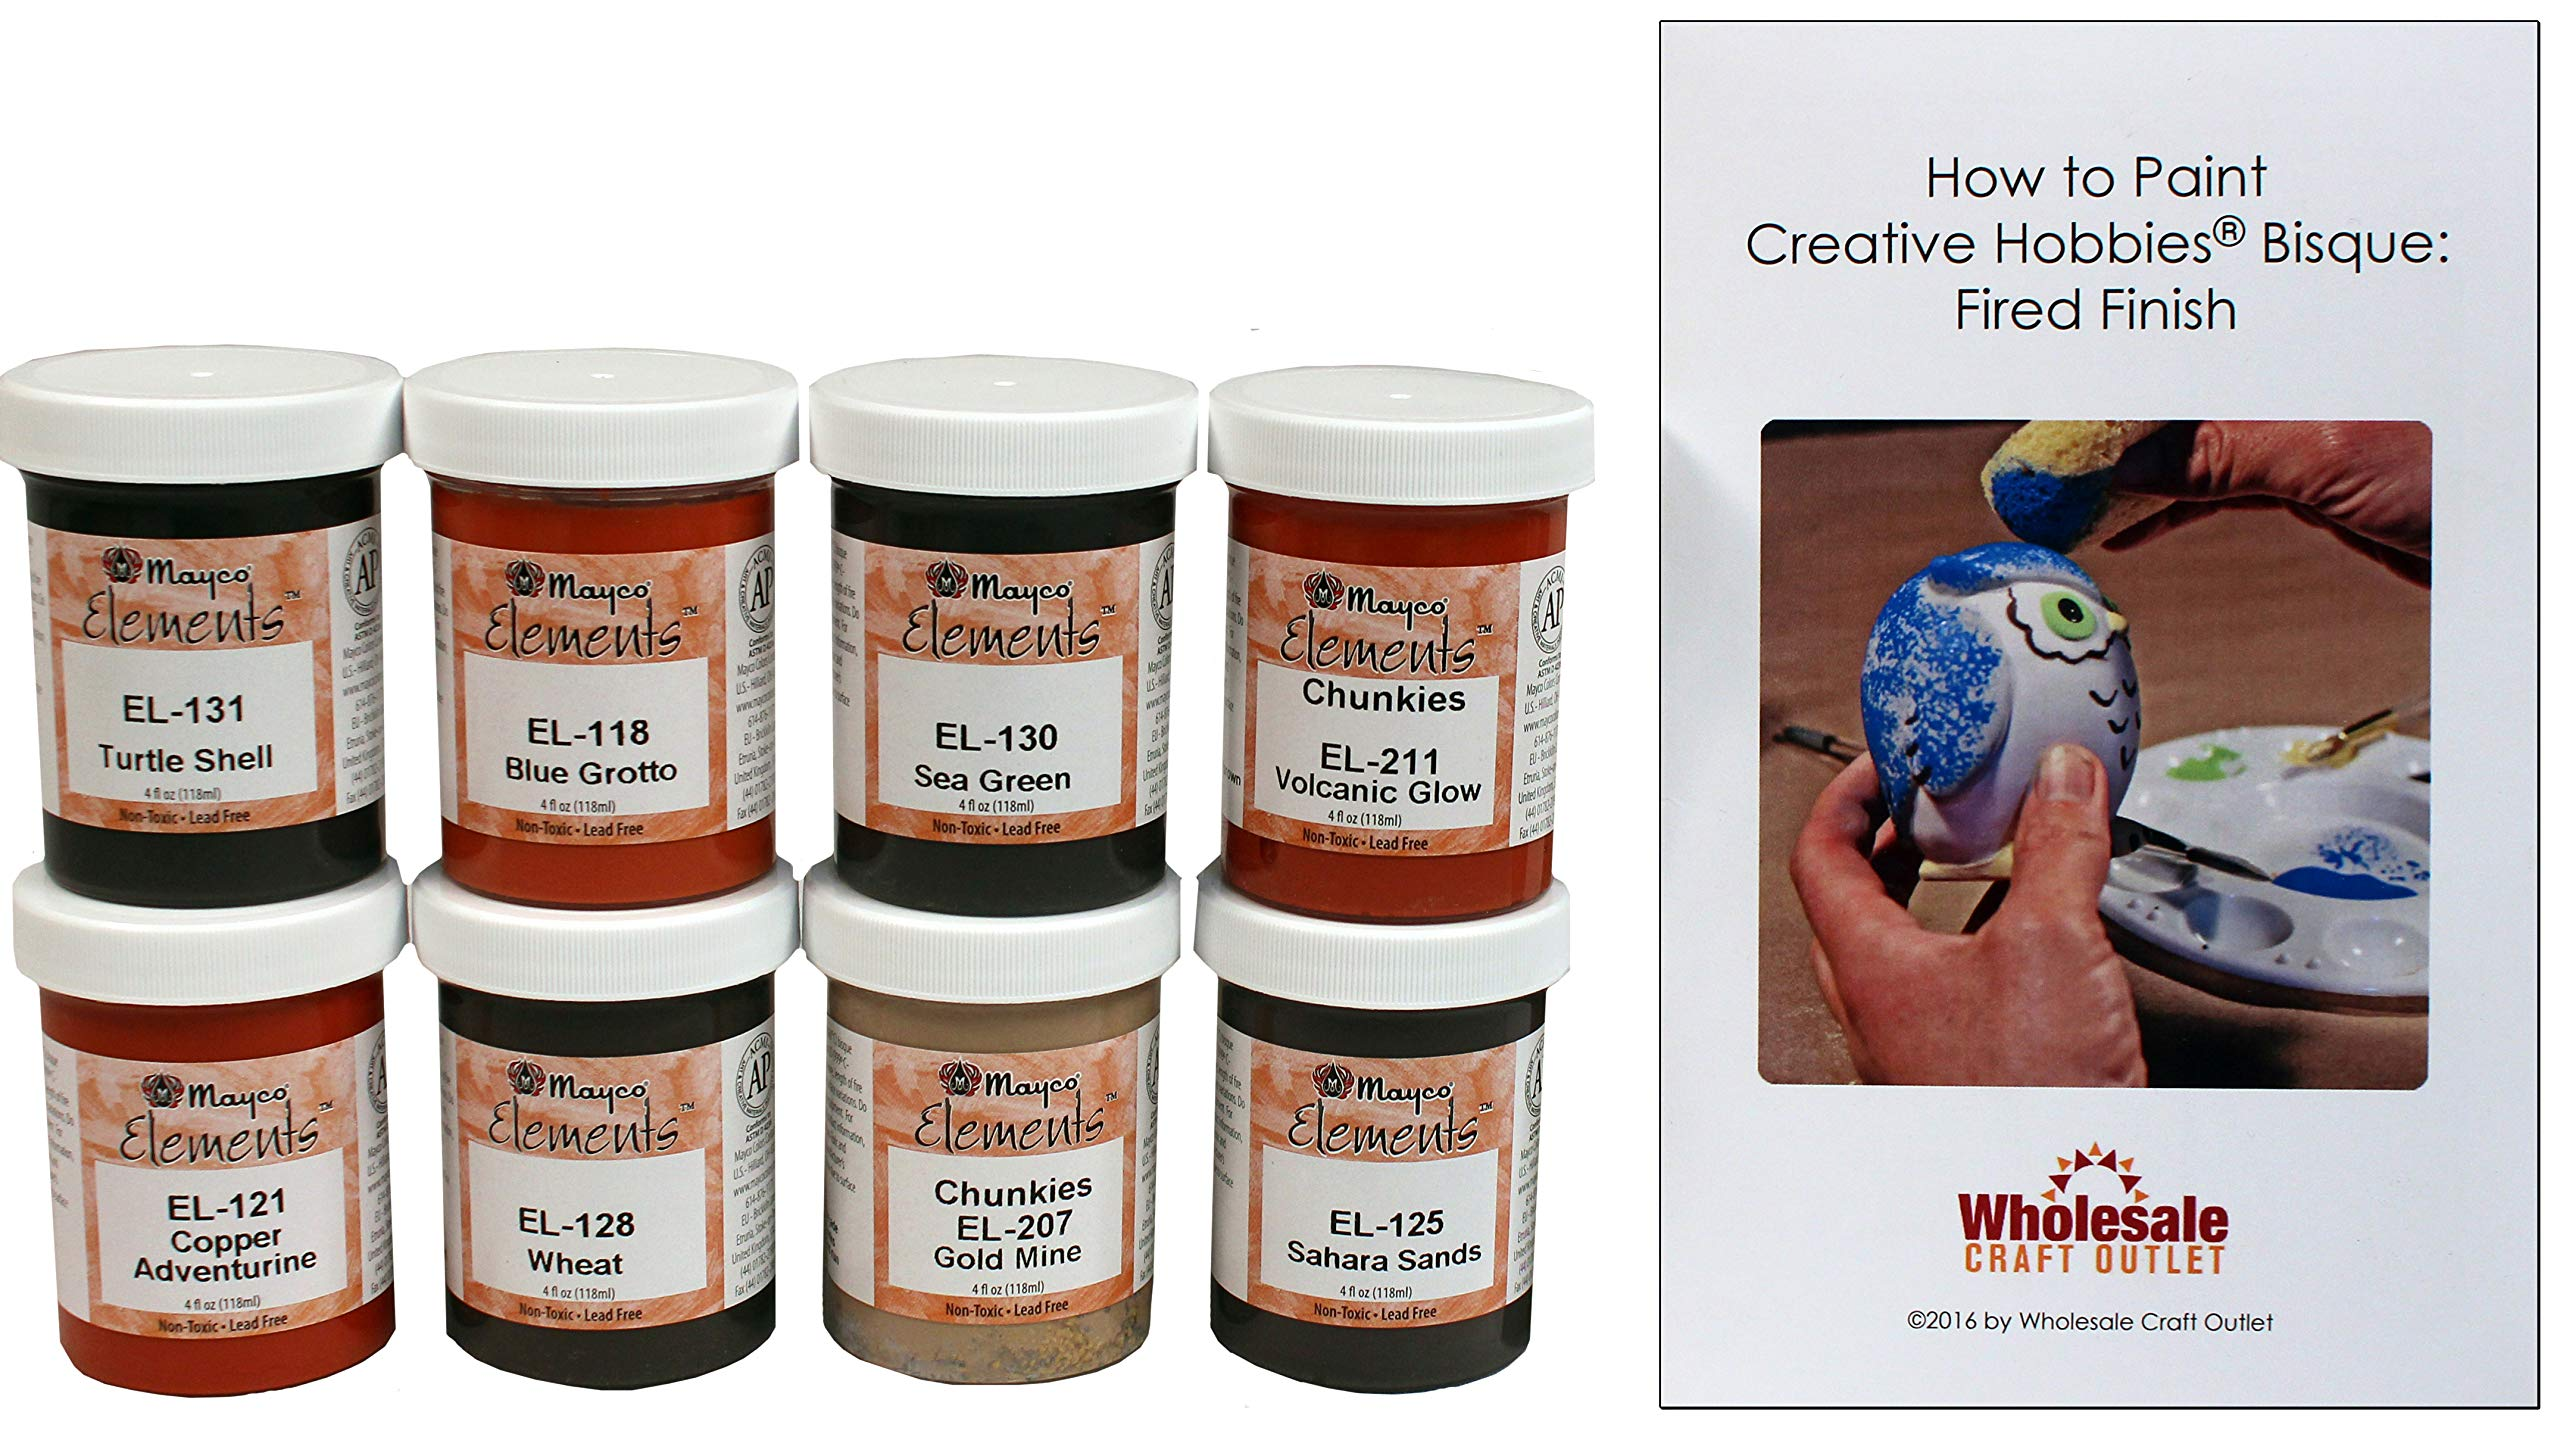 Mayco ELKIT-1 Elements Glaze Kit for Ceramics - Set of 8 Best Selling Colors in 4 Ounce Jars with Free How to Paint Ceramics Booklet